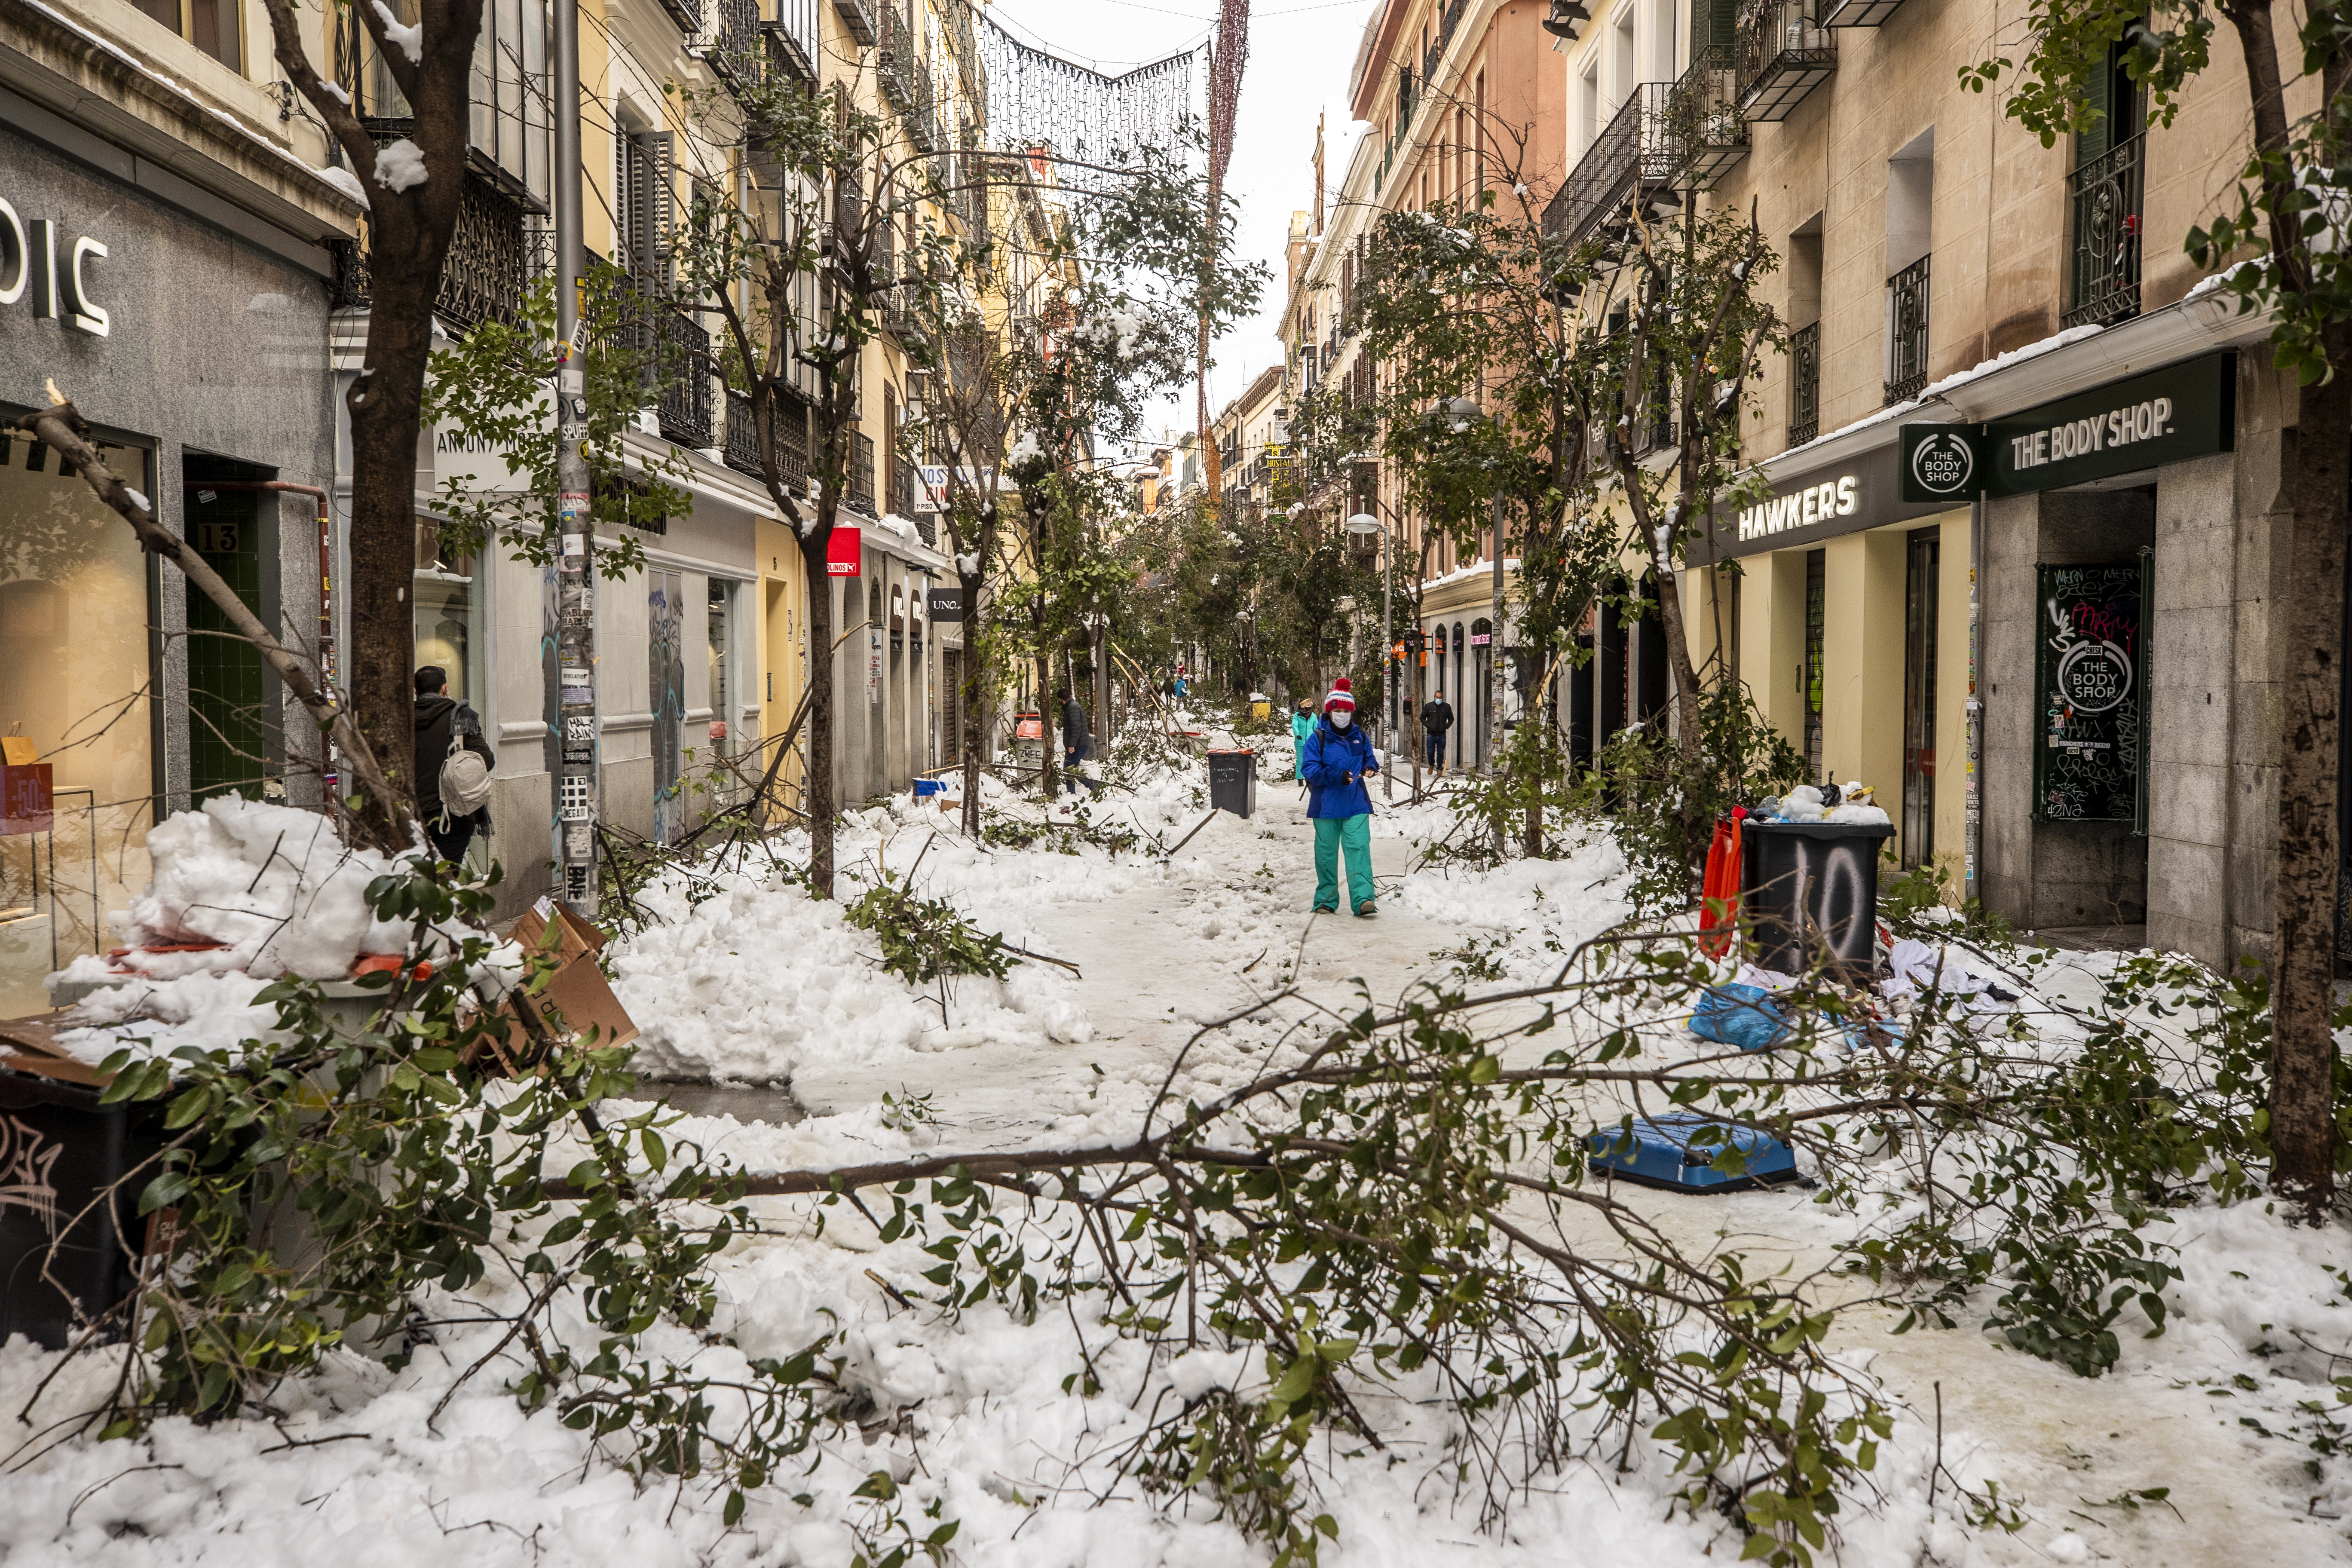 People walk along a street with snow and fallen tree branches during after a heavy snowfall in downtown Madrid, Spain, on Jan. 10, 2021.